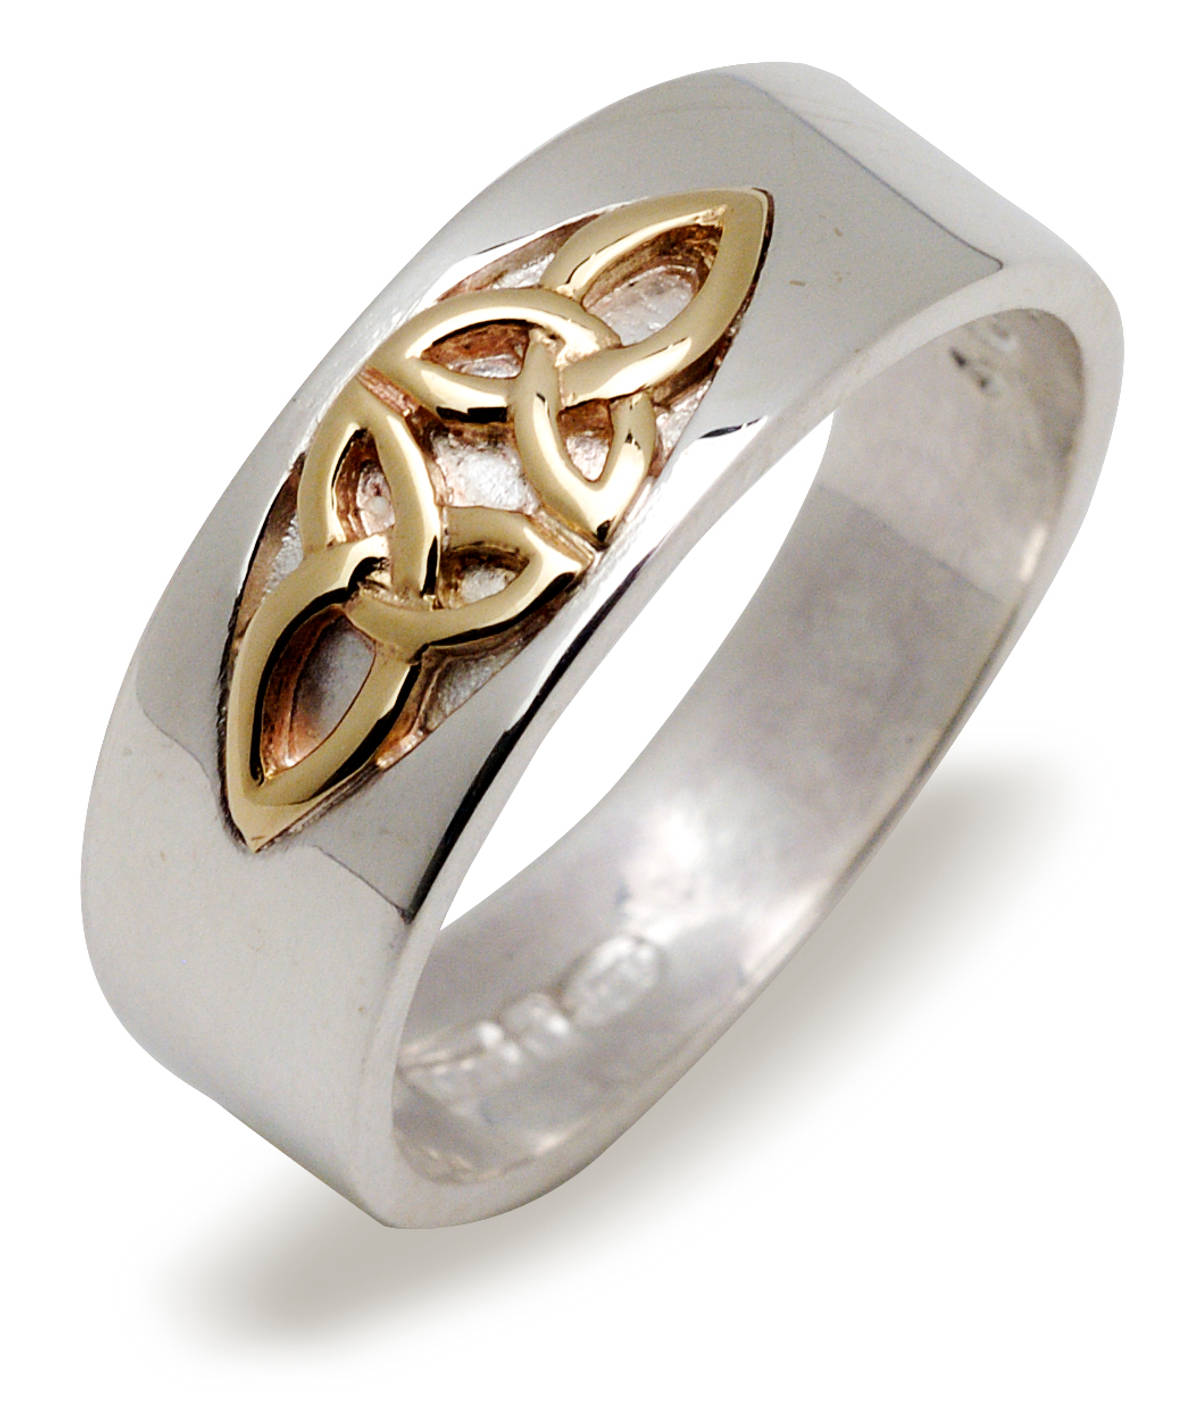 Silver band with 10 carat yellow gold trinity knot detail in window